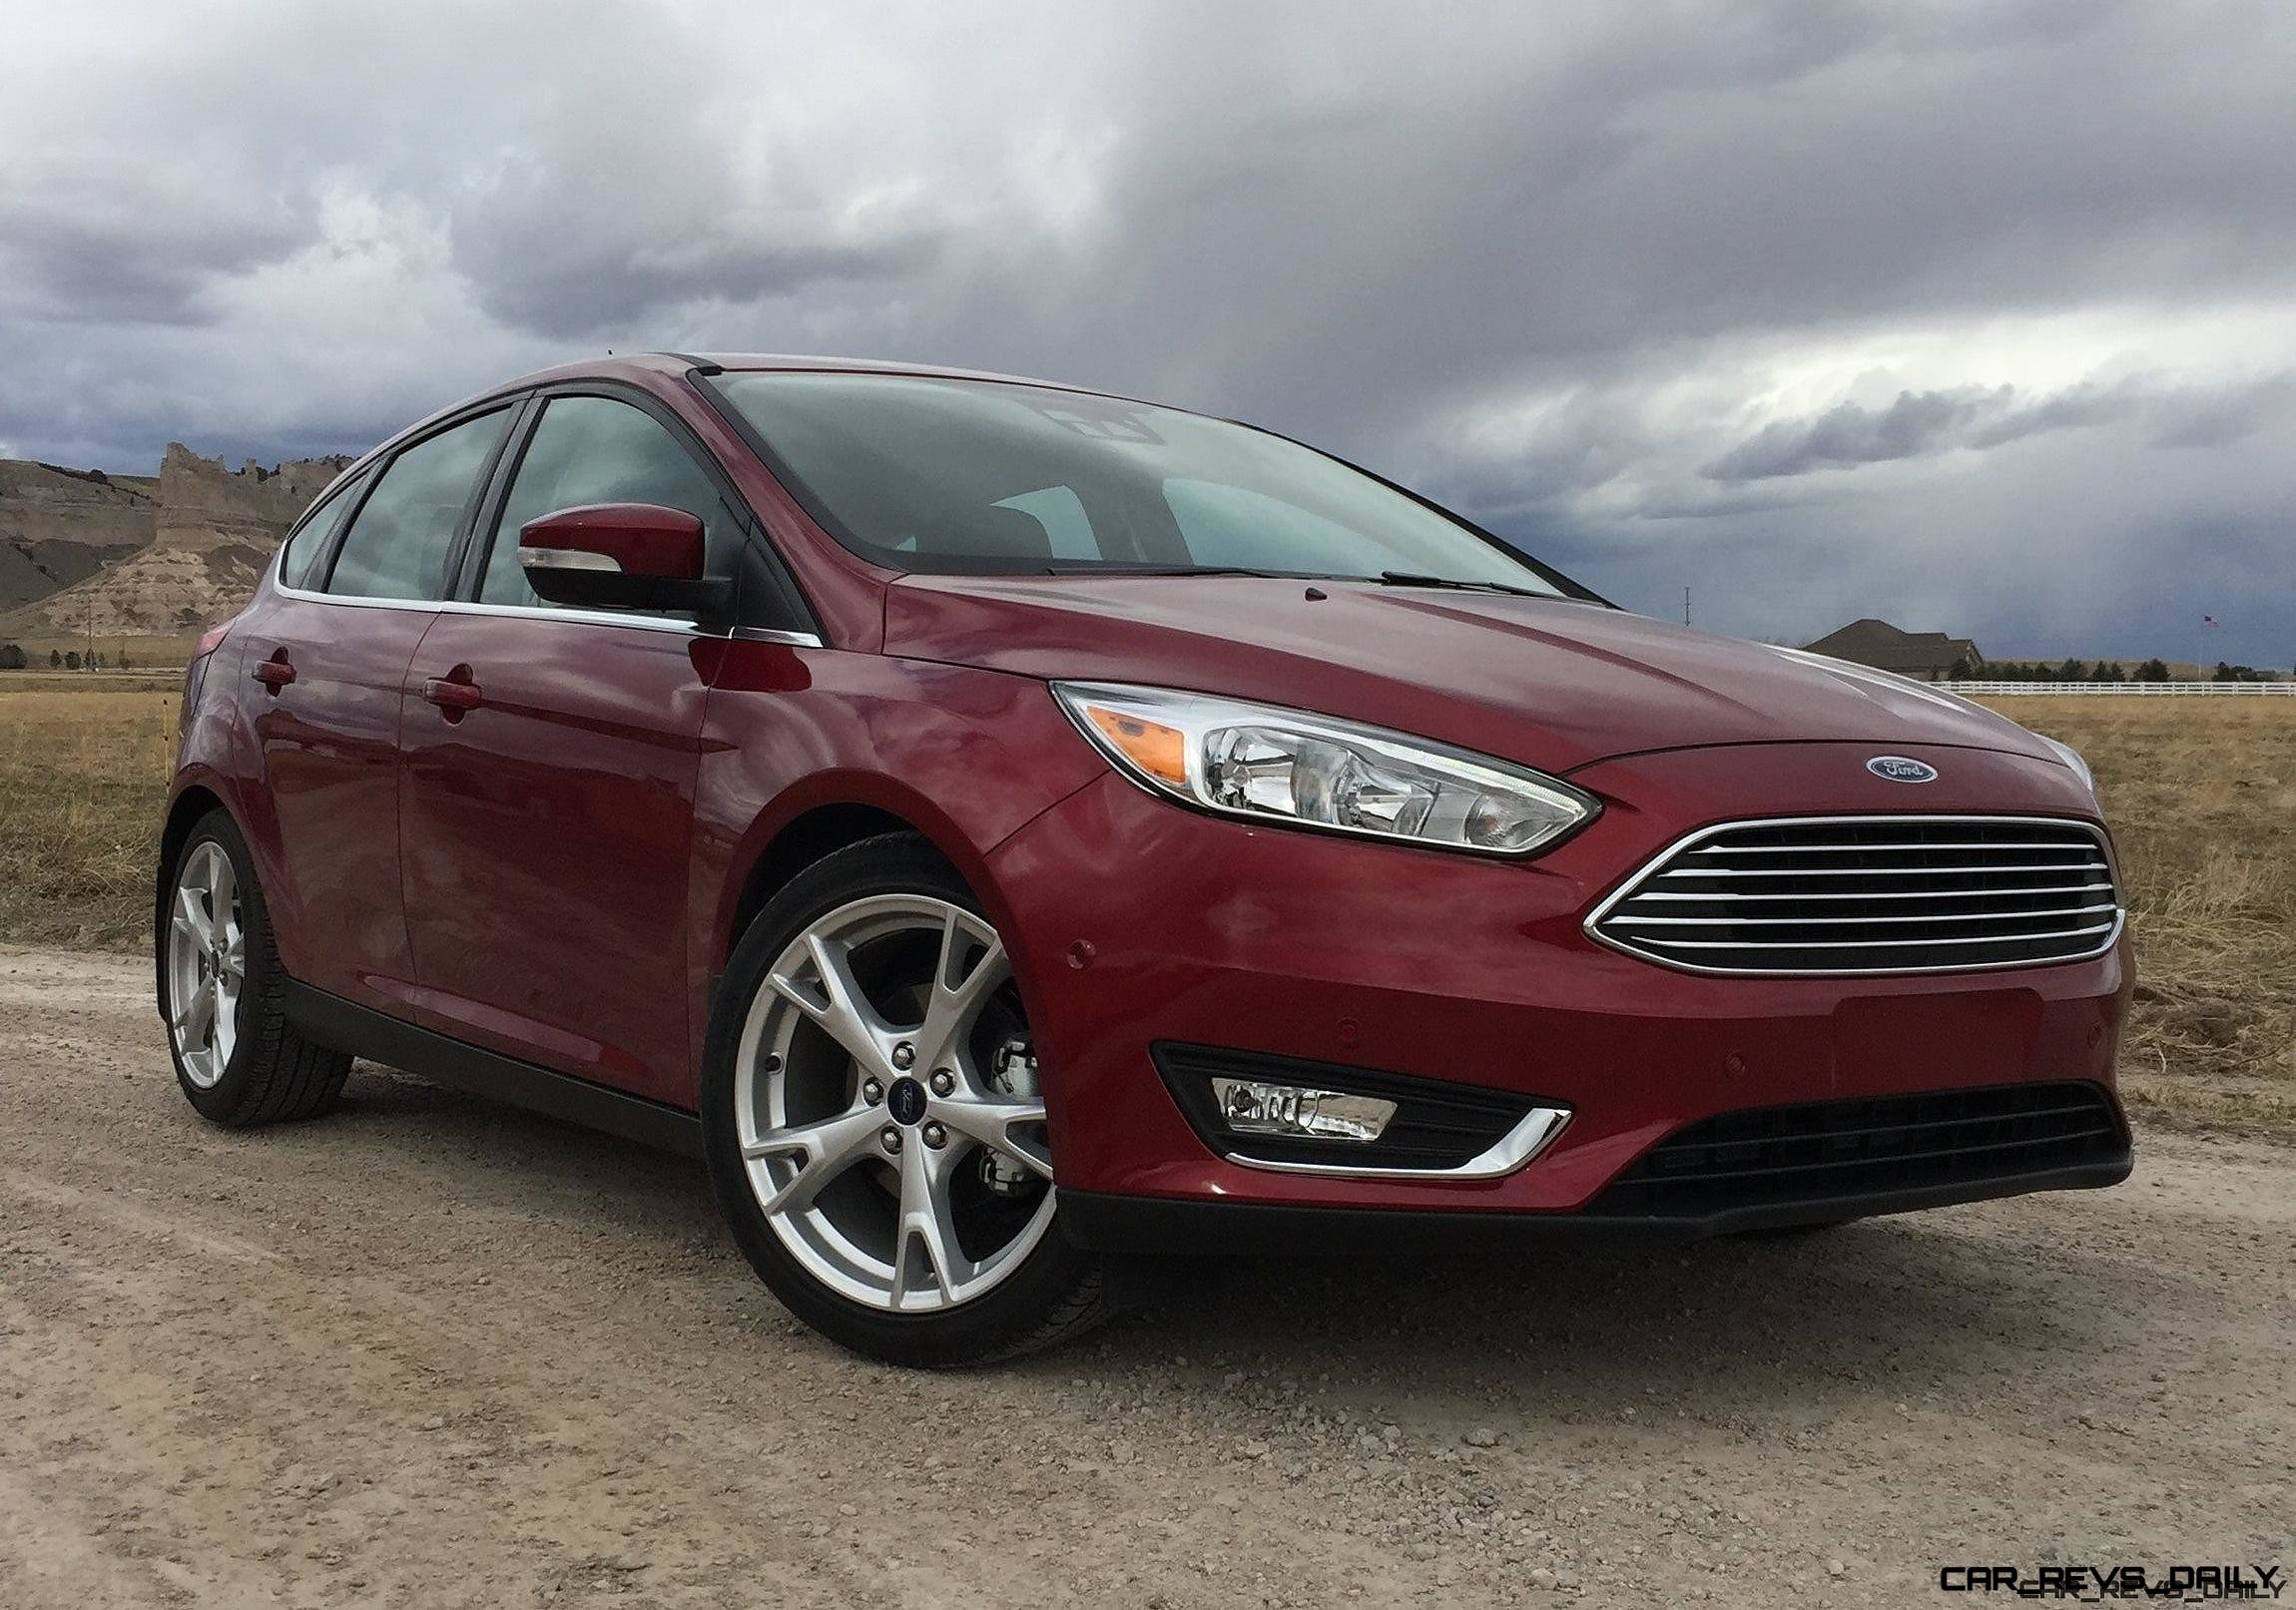 Road Test Review - 2016 Ford Focus Titanium - By Tim Esterdahl 4